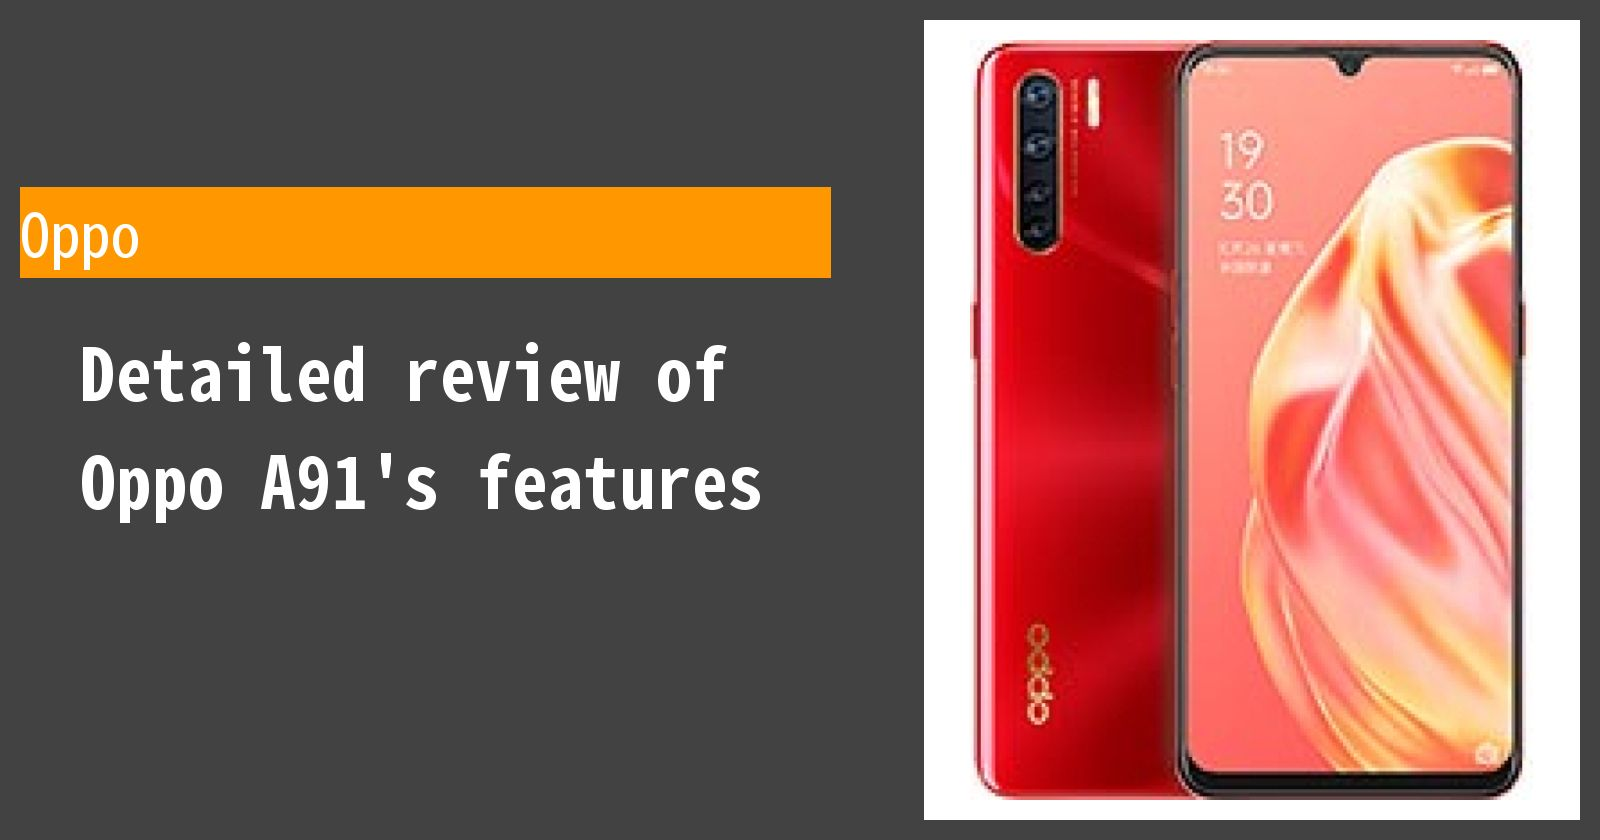 Detailed review of Oppo A91's features